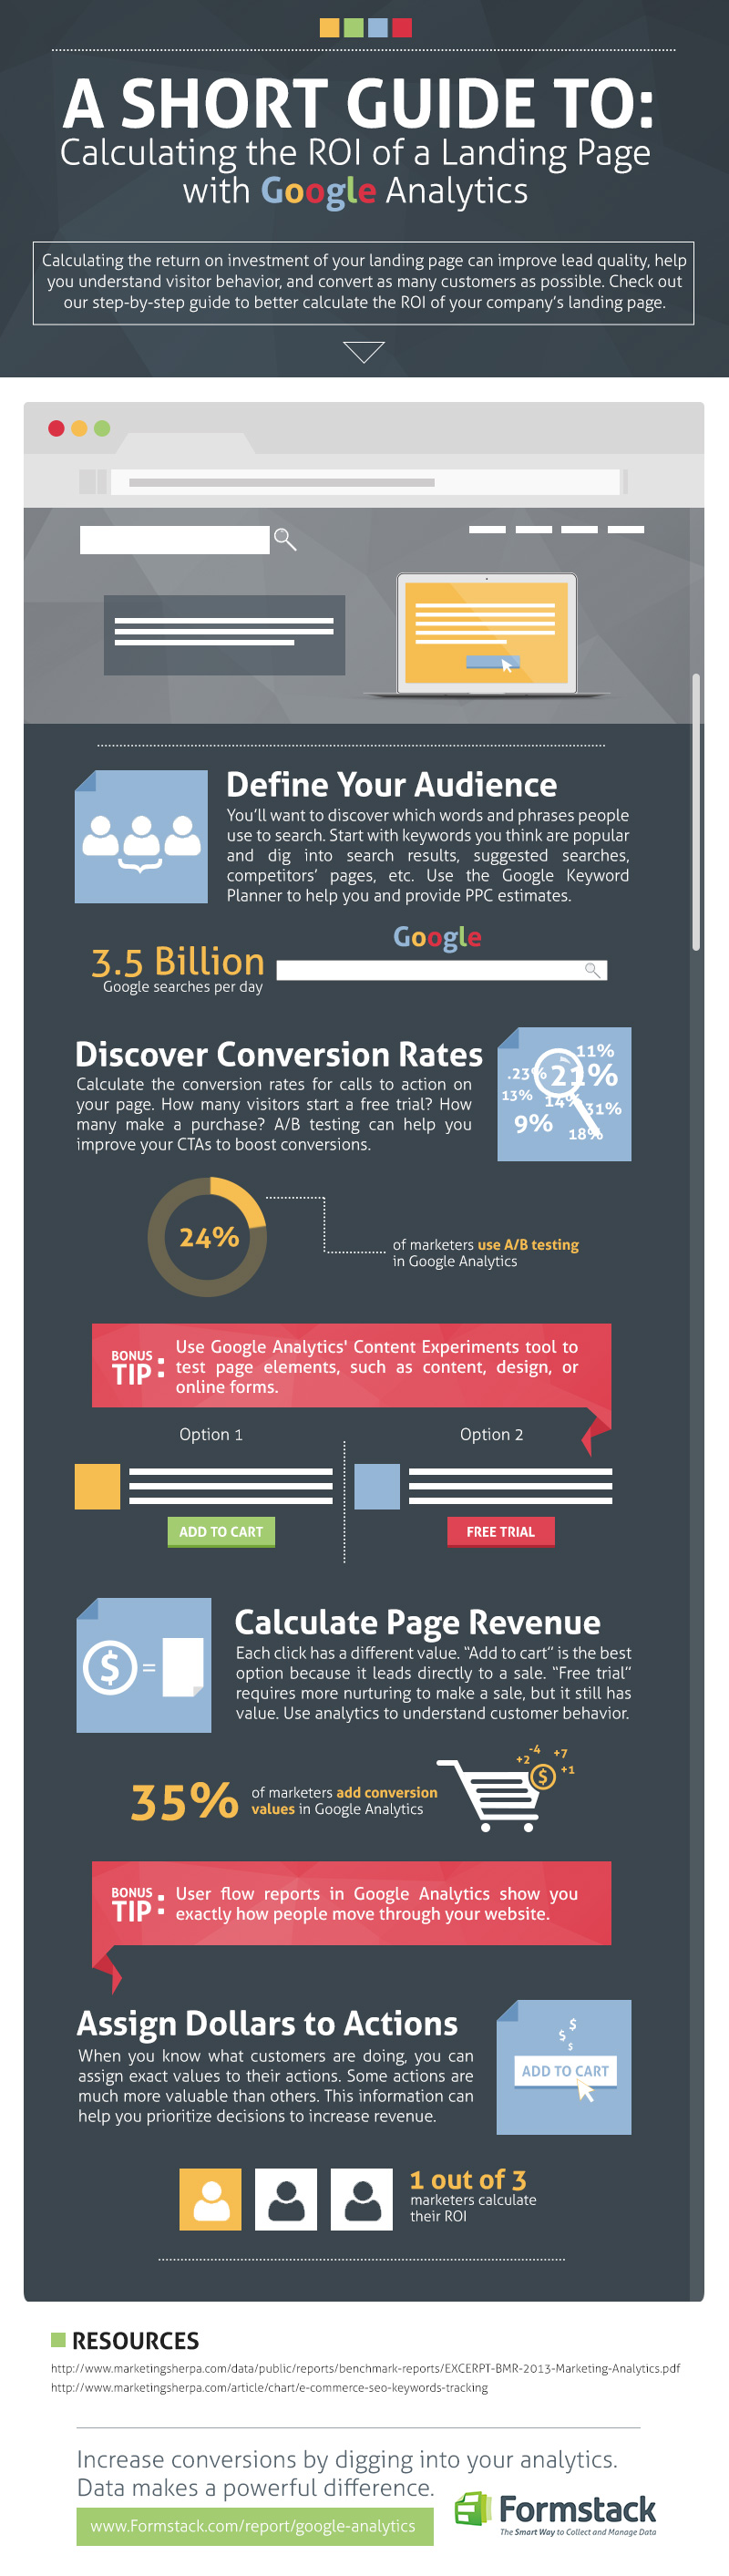 Calculating The ROI Of A Landing Page With Google Analytics - #infographic